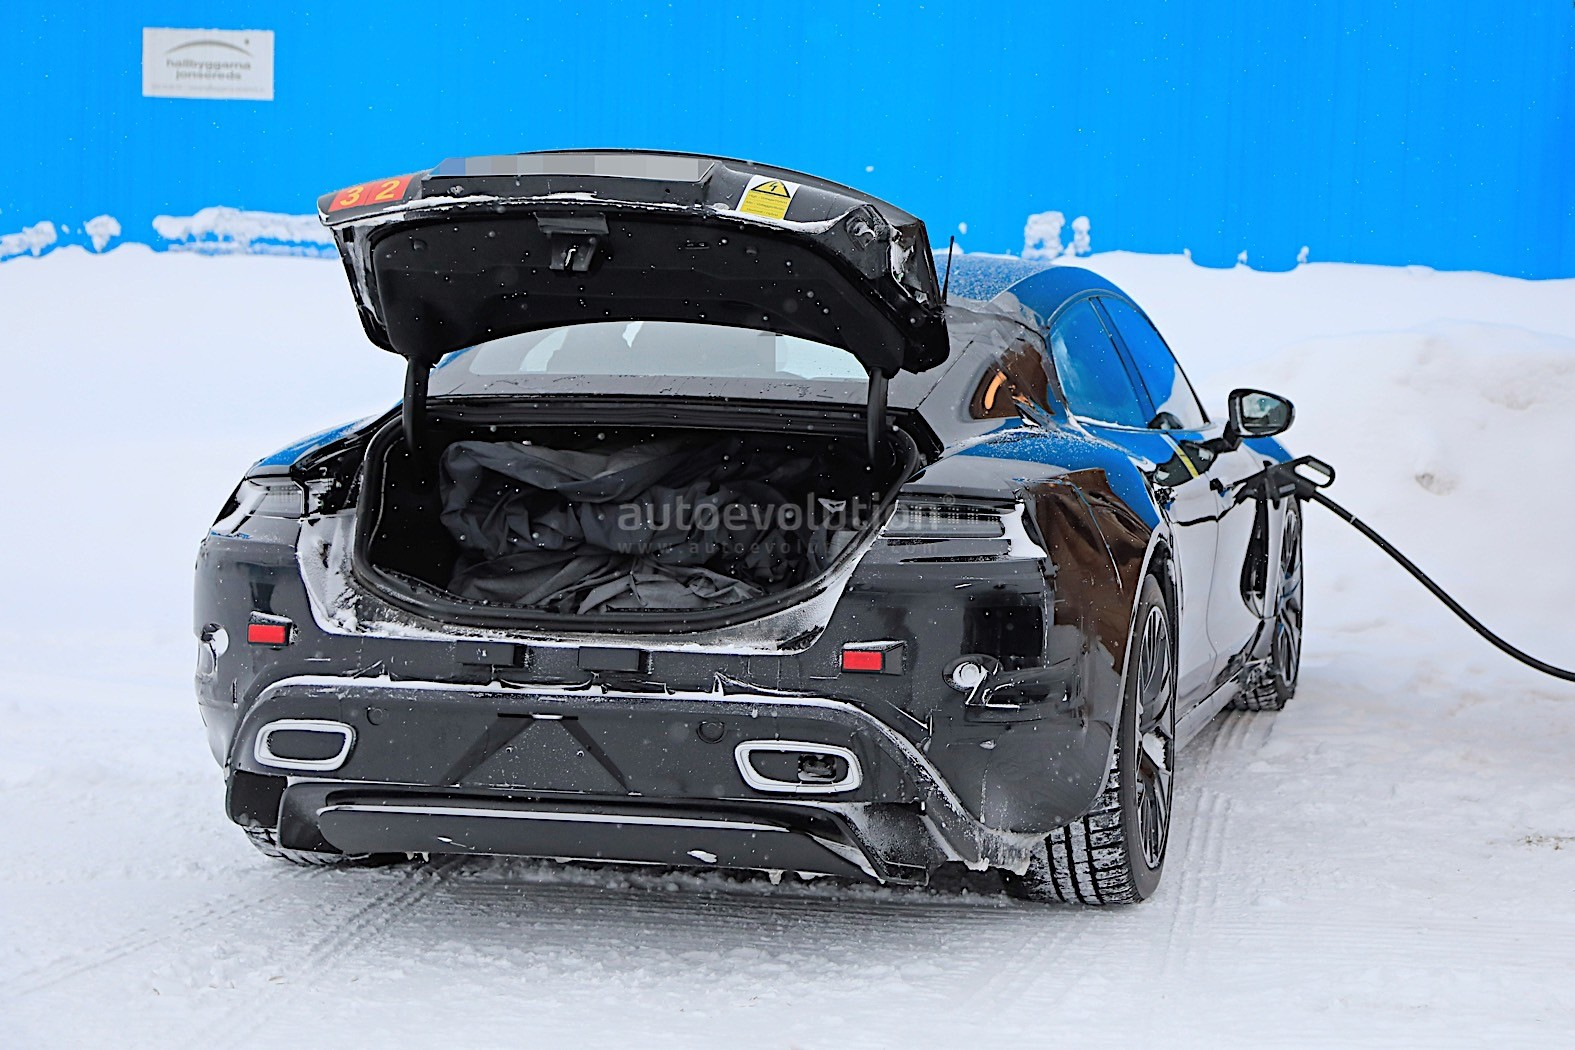 2019 - [Porsche] Taycan [J1] - Page 4 Porsche-taycan-caught-charging-paparazzis-have-a-field-day_15